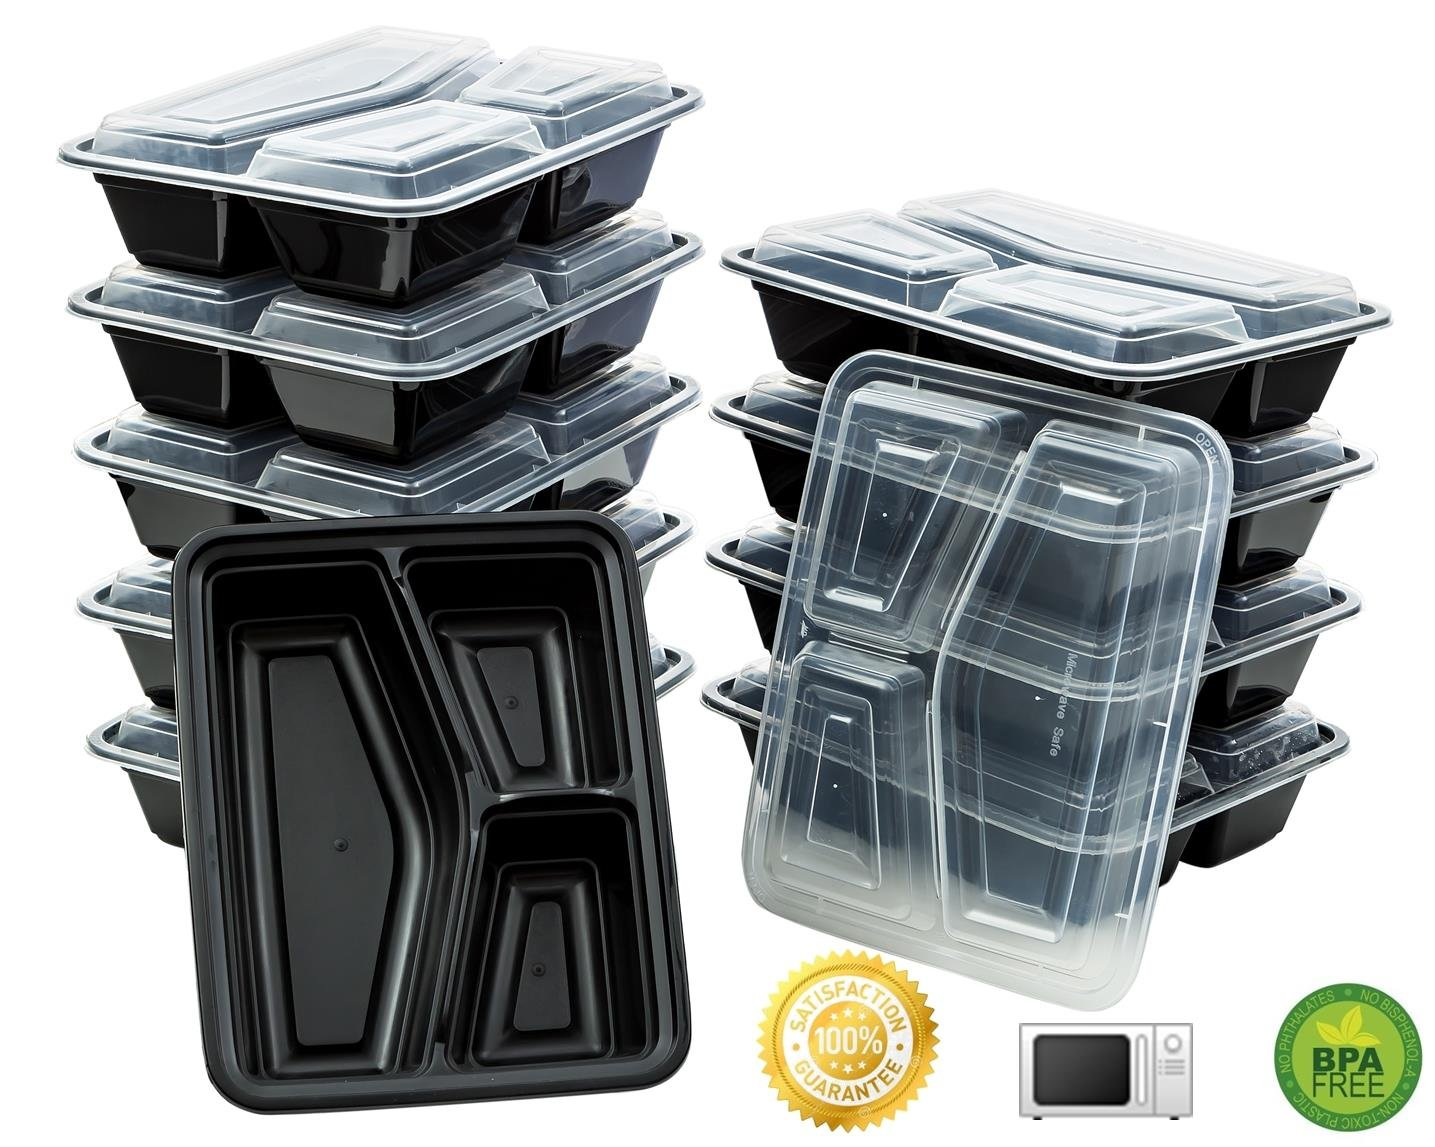 10 meal prep containers 3 compartment food storage plastic microwavable reusable ebay. Black Bedroom Furniture Sets. Home Design Ideas